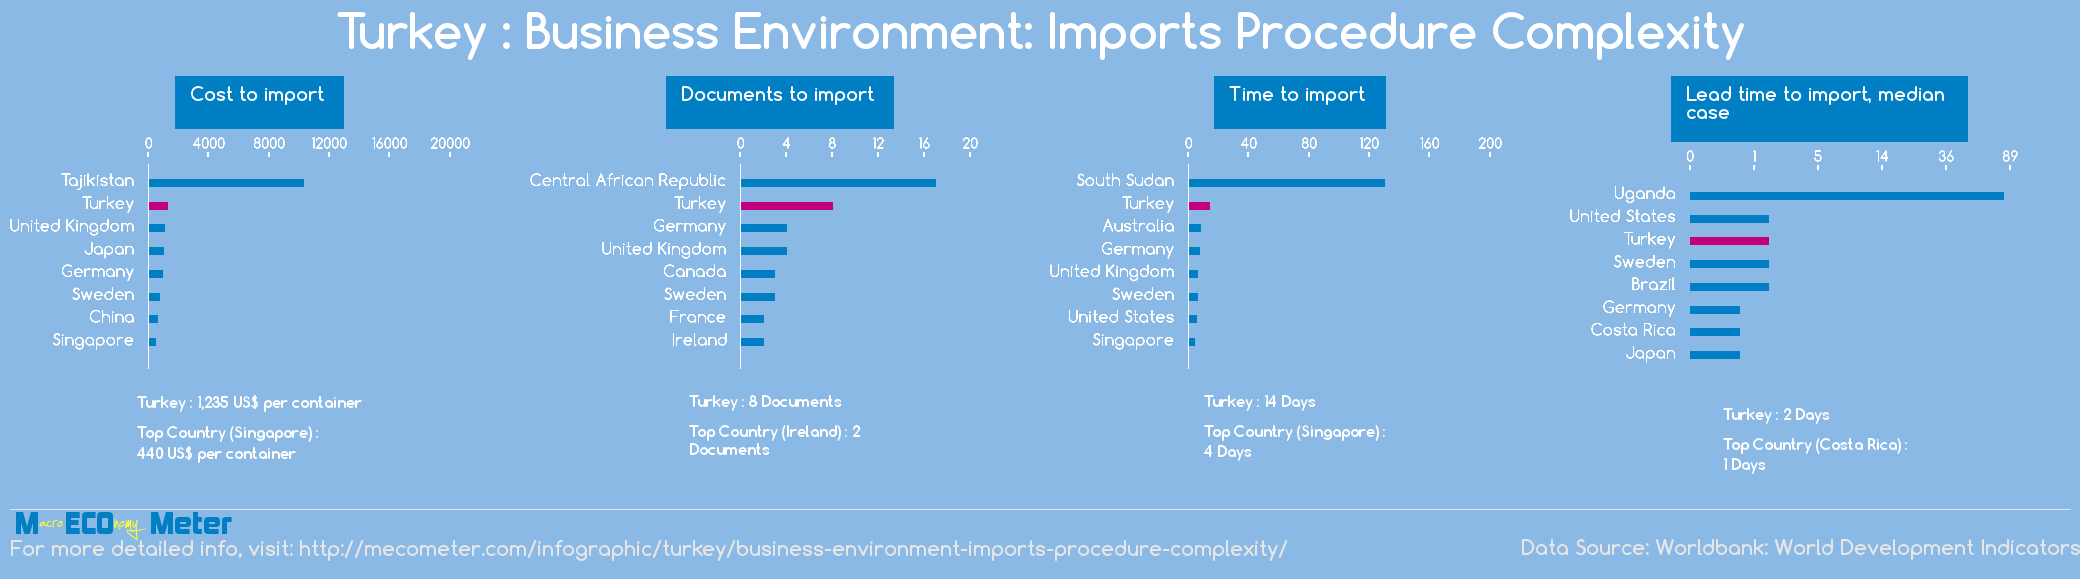 Turkey : Business Environment: Imports Procedure Complexity